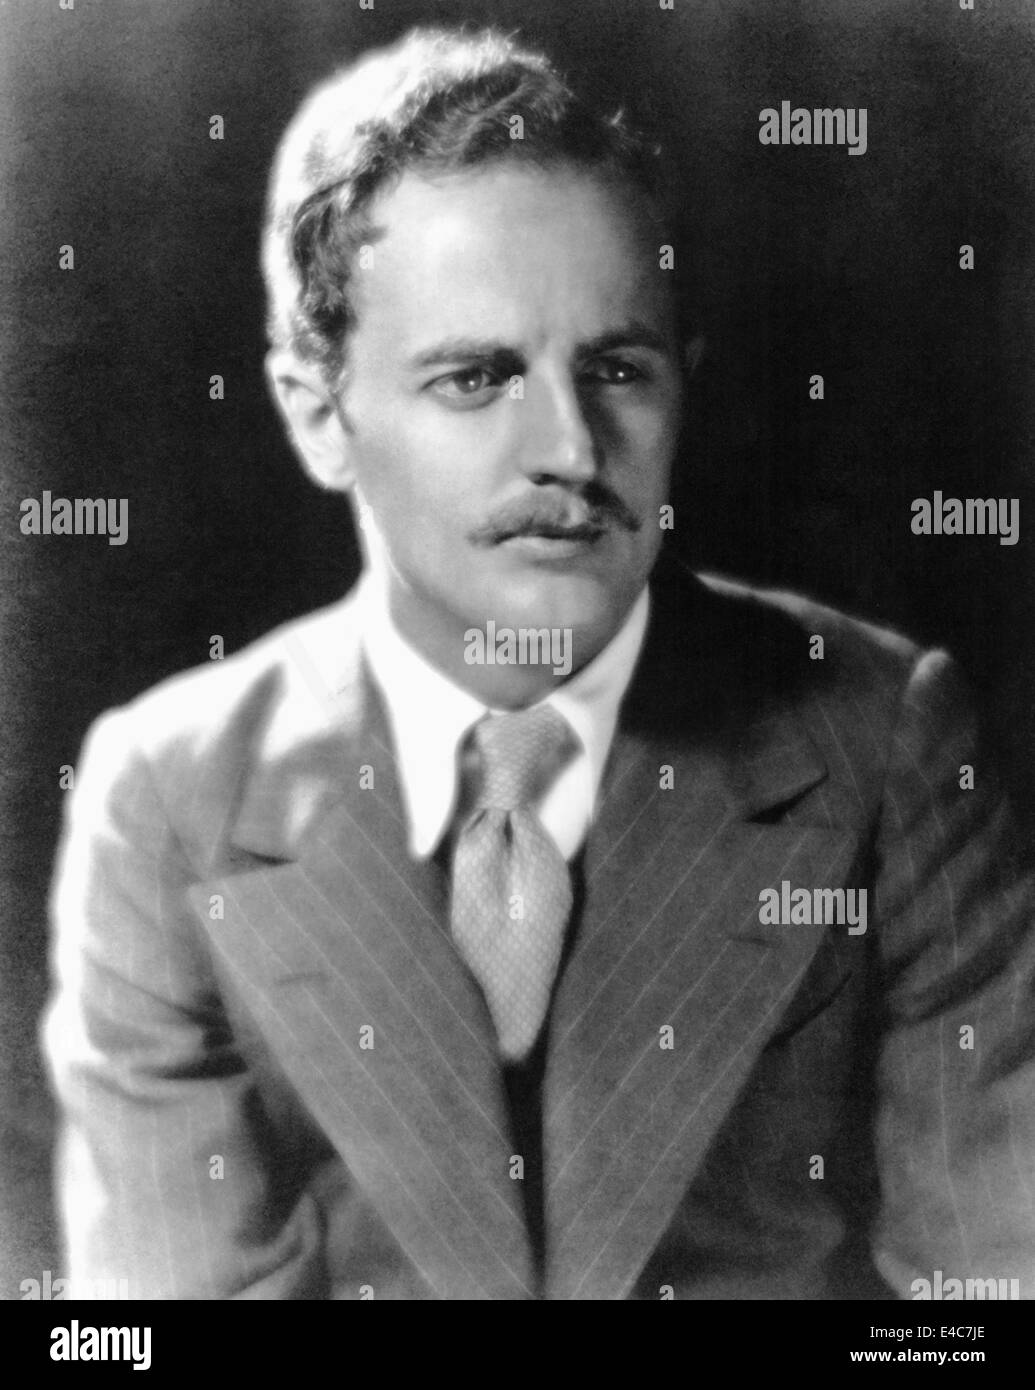 Darryl F. Zanuck (1902-1979), American Film Studio Executive and Producer, Portrait, circa early 1930's - Stock Image